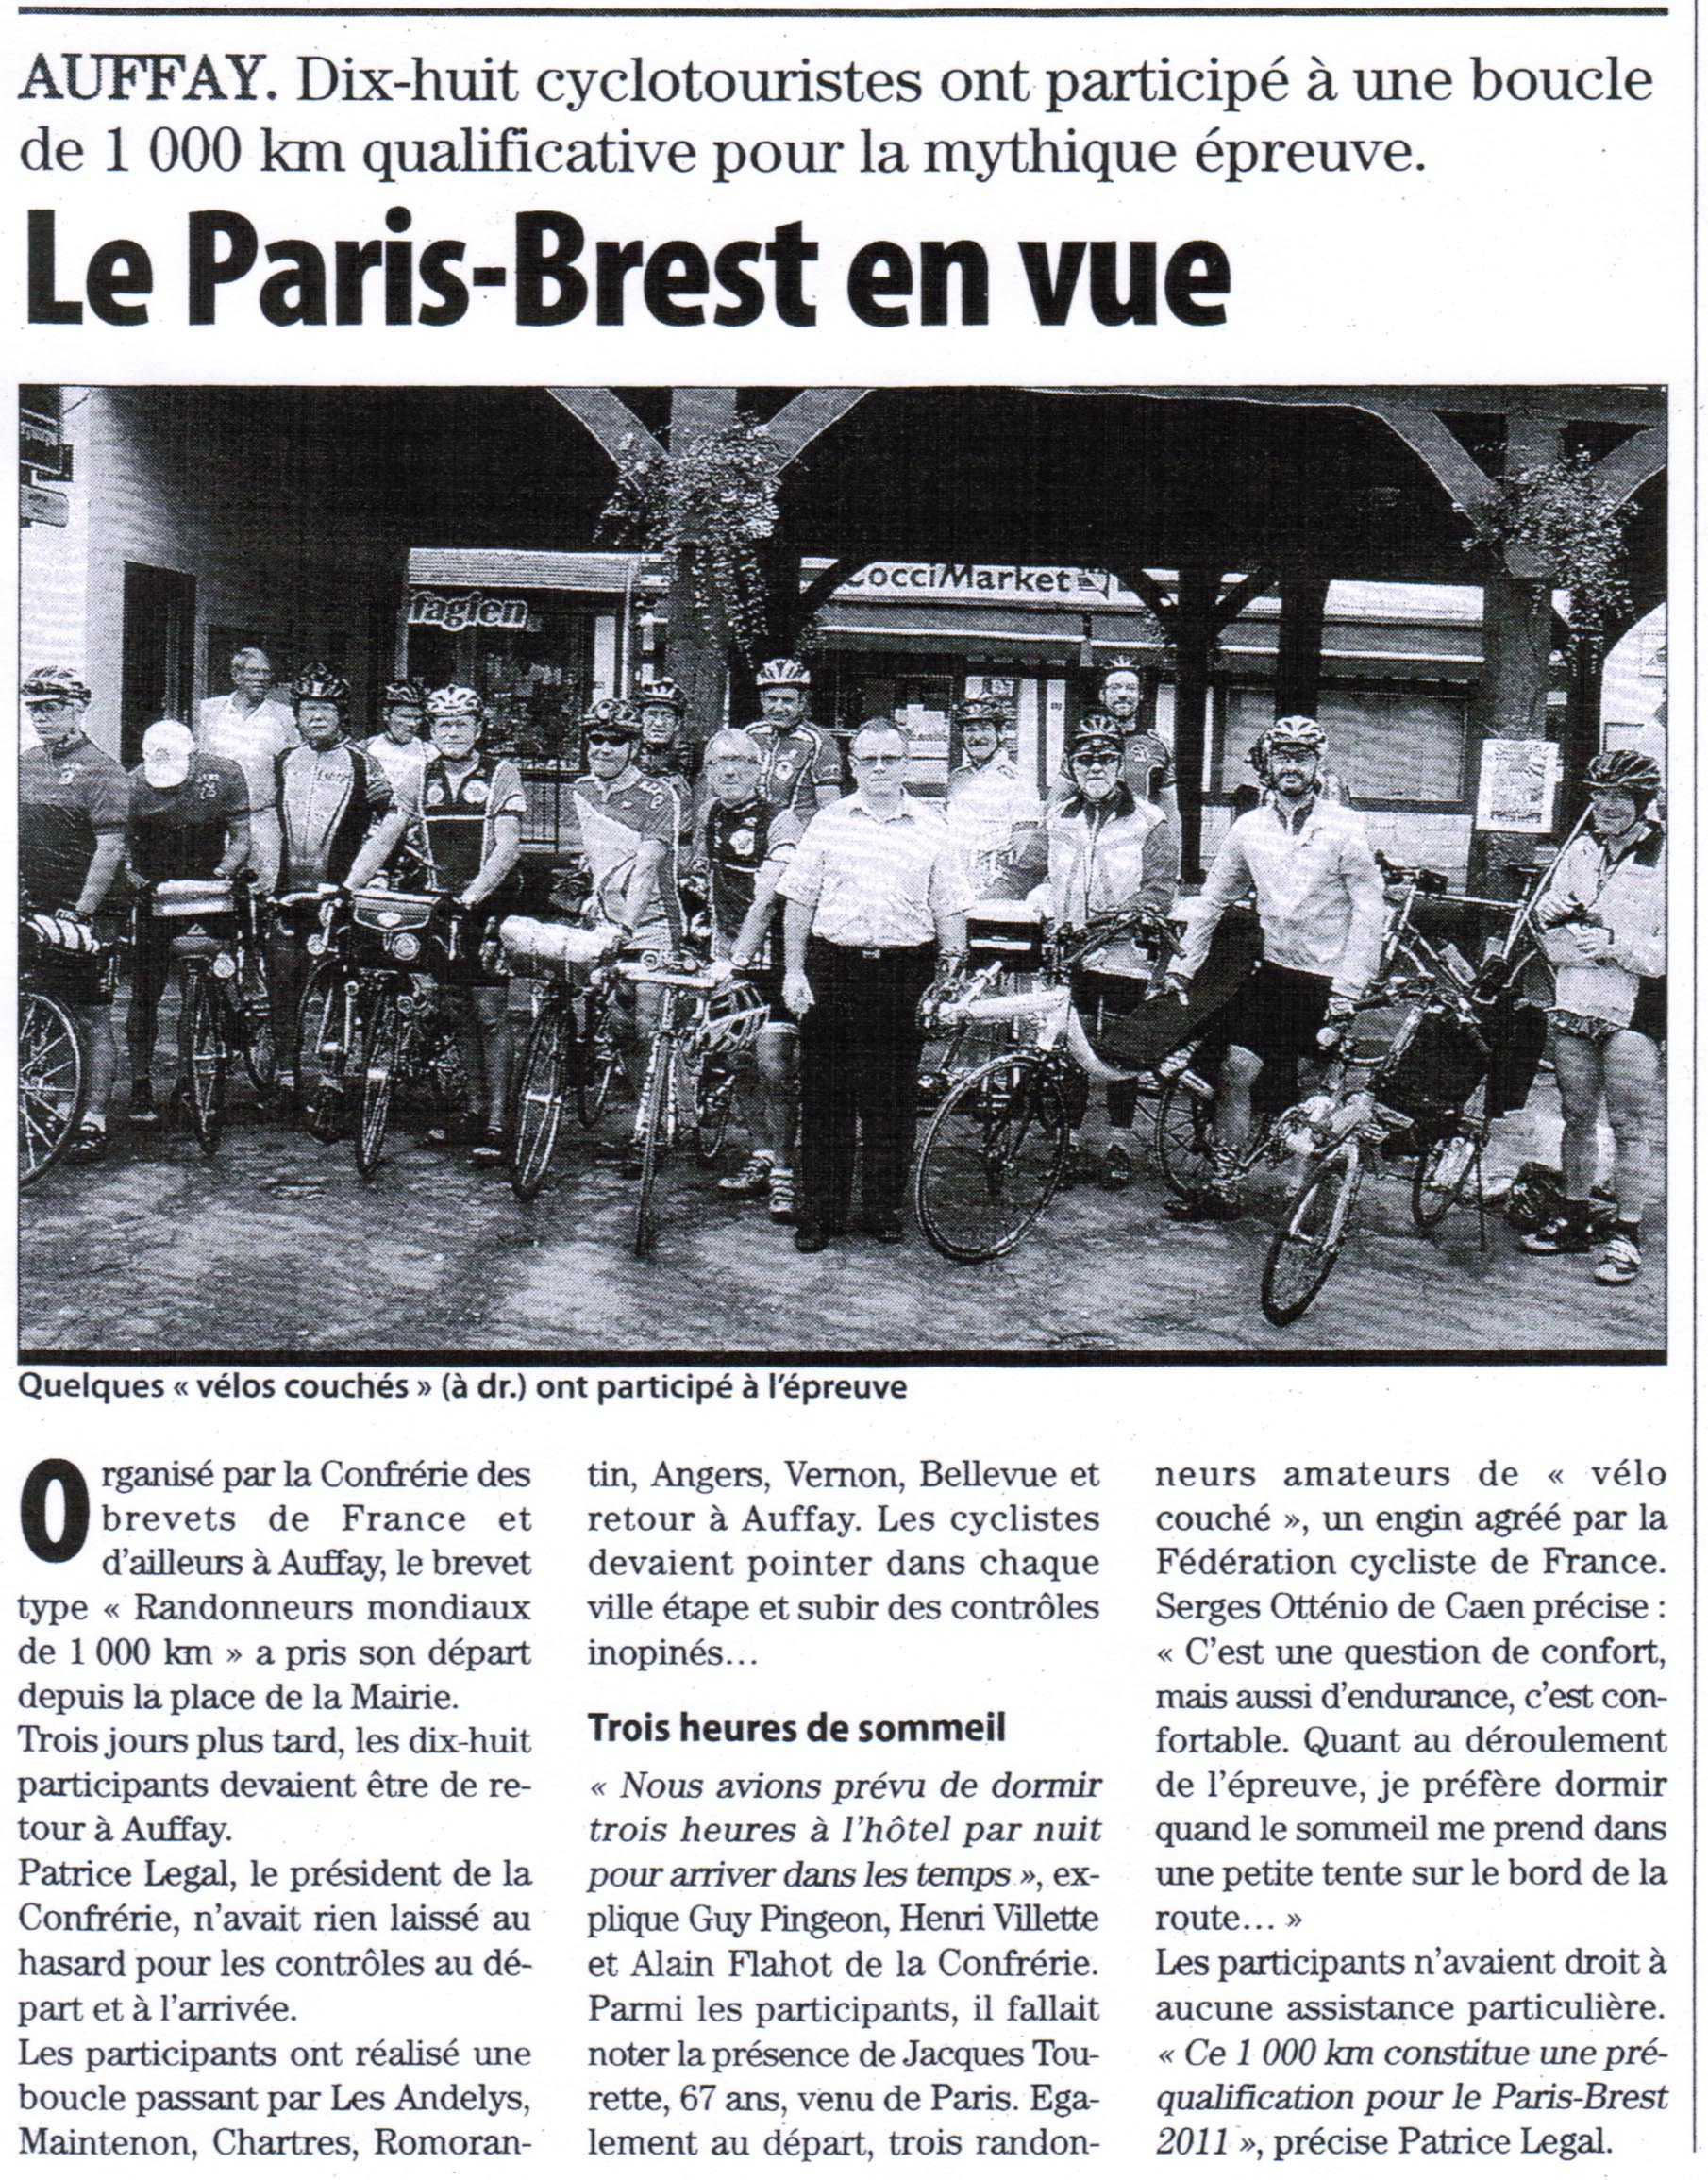 Article Paris-Normandie du 27 aot 2010